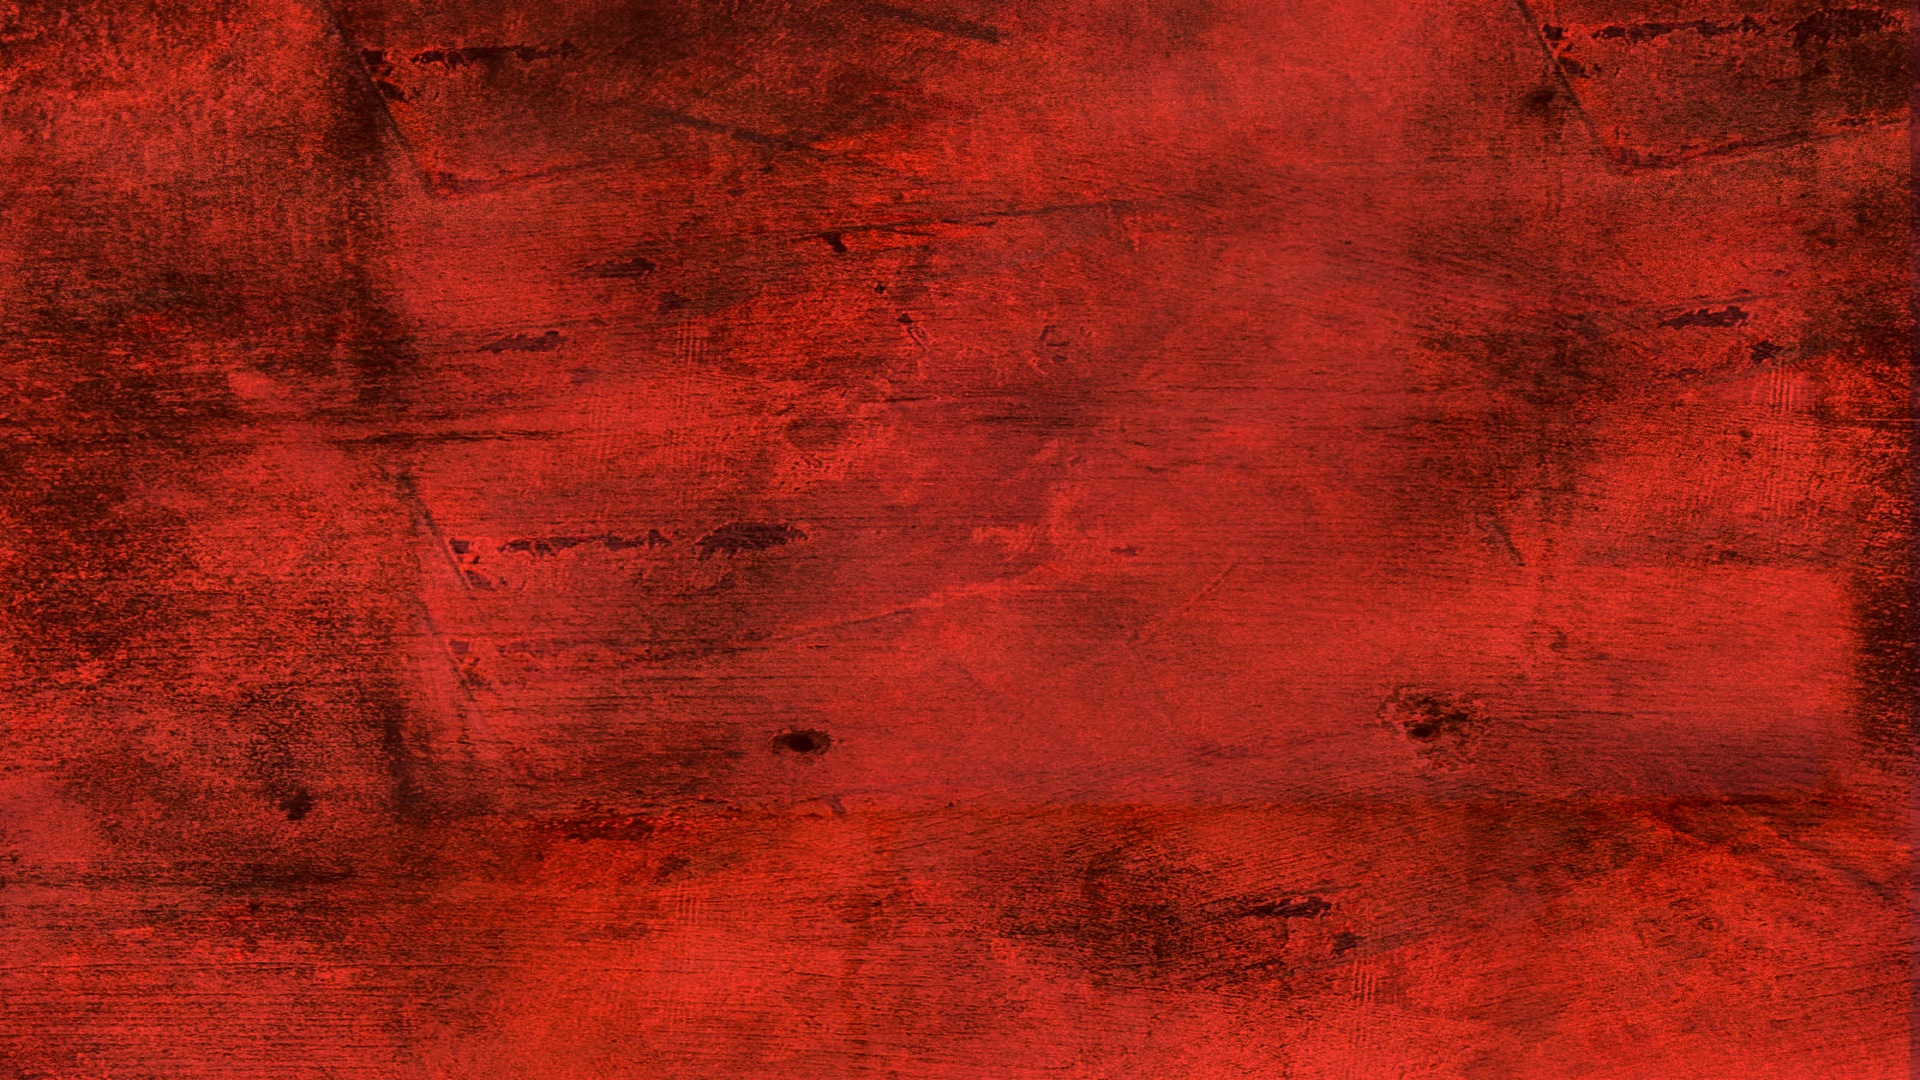 red textured background hd - photo #23